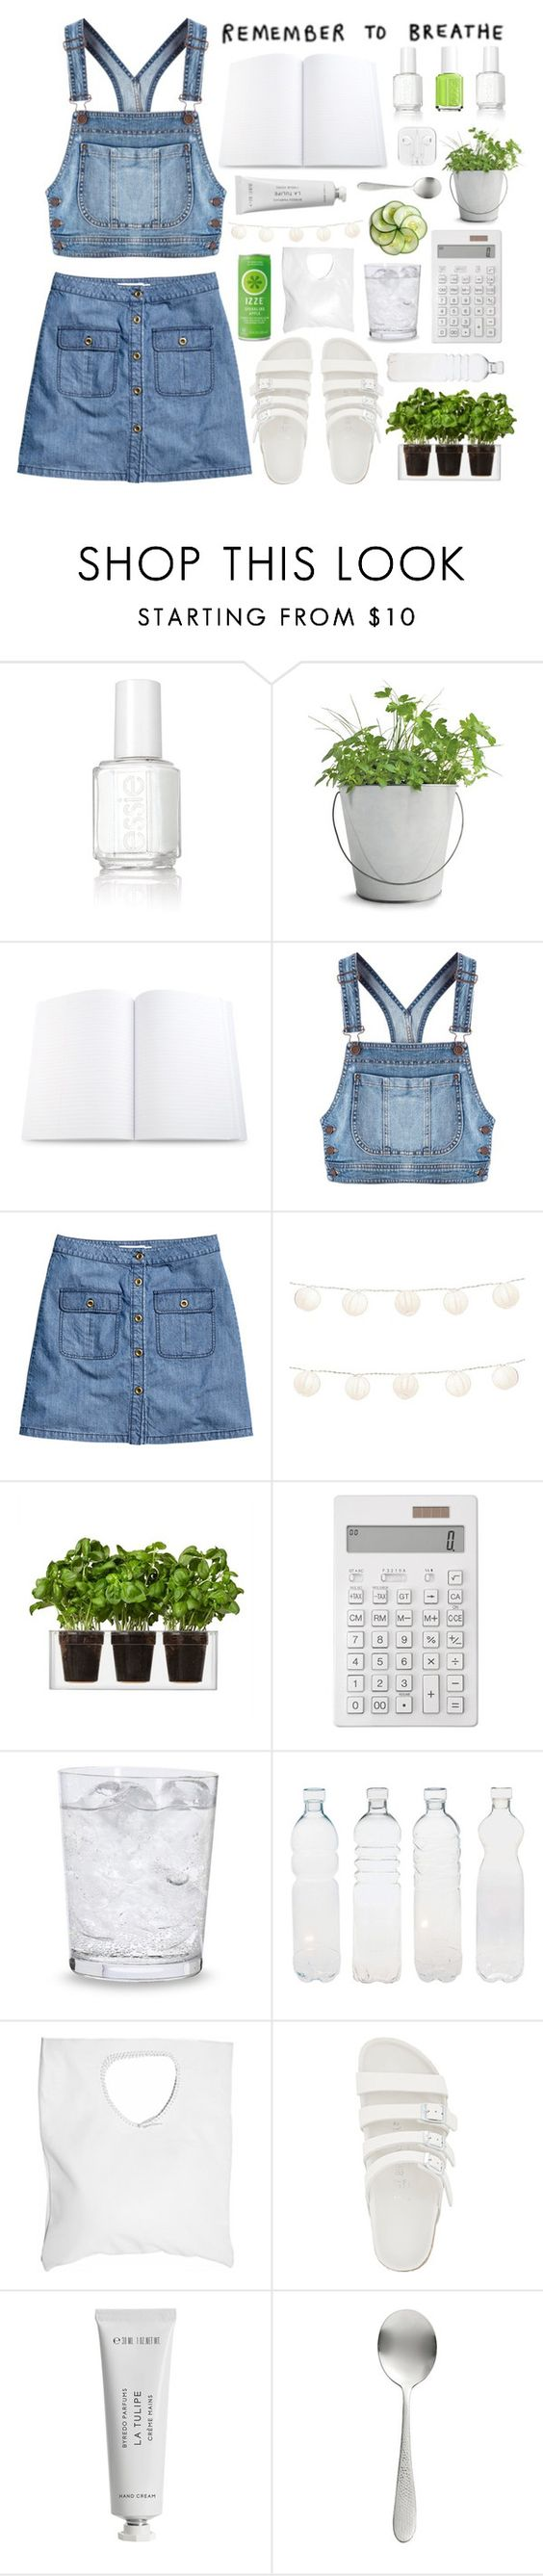 """Breath in denim"" by tomorrow-xoxo ❤ liked on Polyvore featuring Essie, Potting Shed Creations, Moschino, H&M, LumaBase, Boskke, Muji, Schott Zwiesel, Seletti and Jennifer Haley"